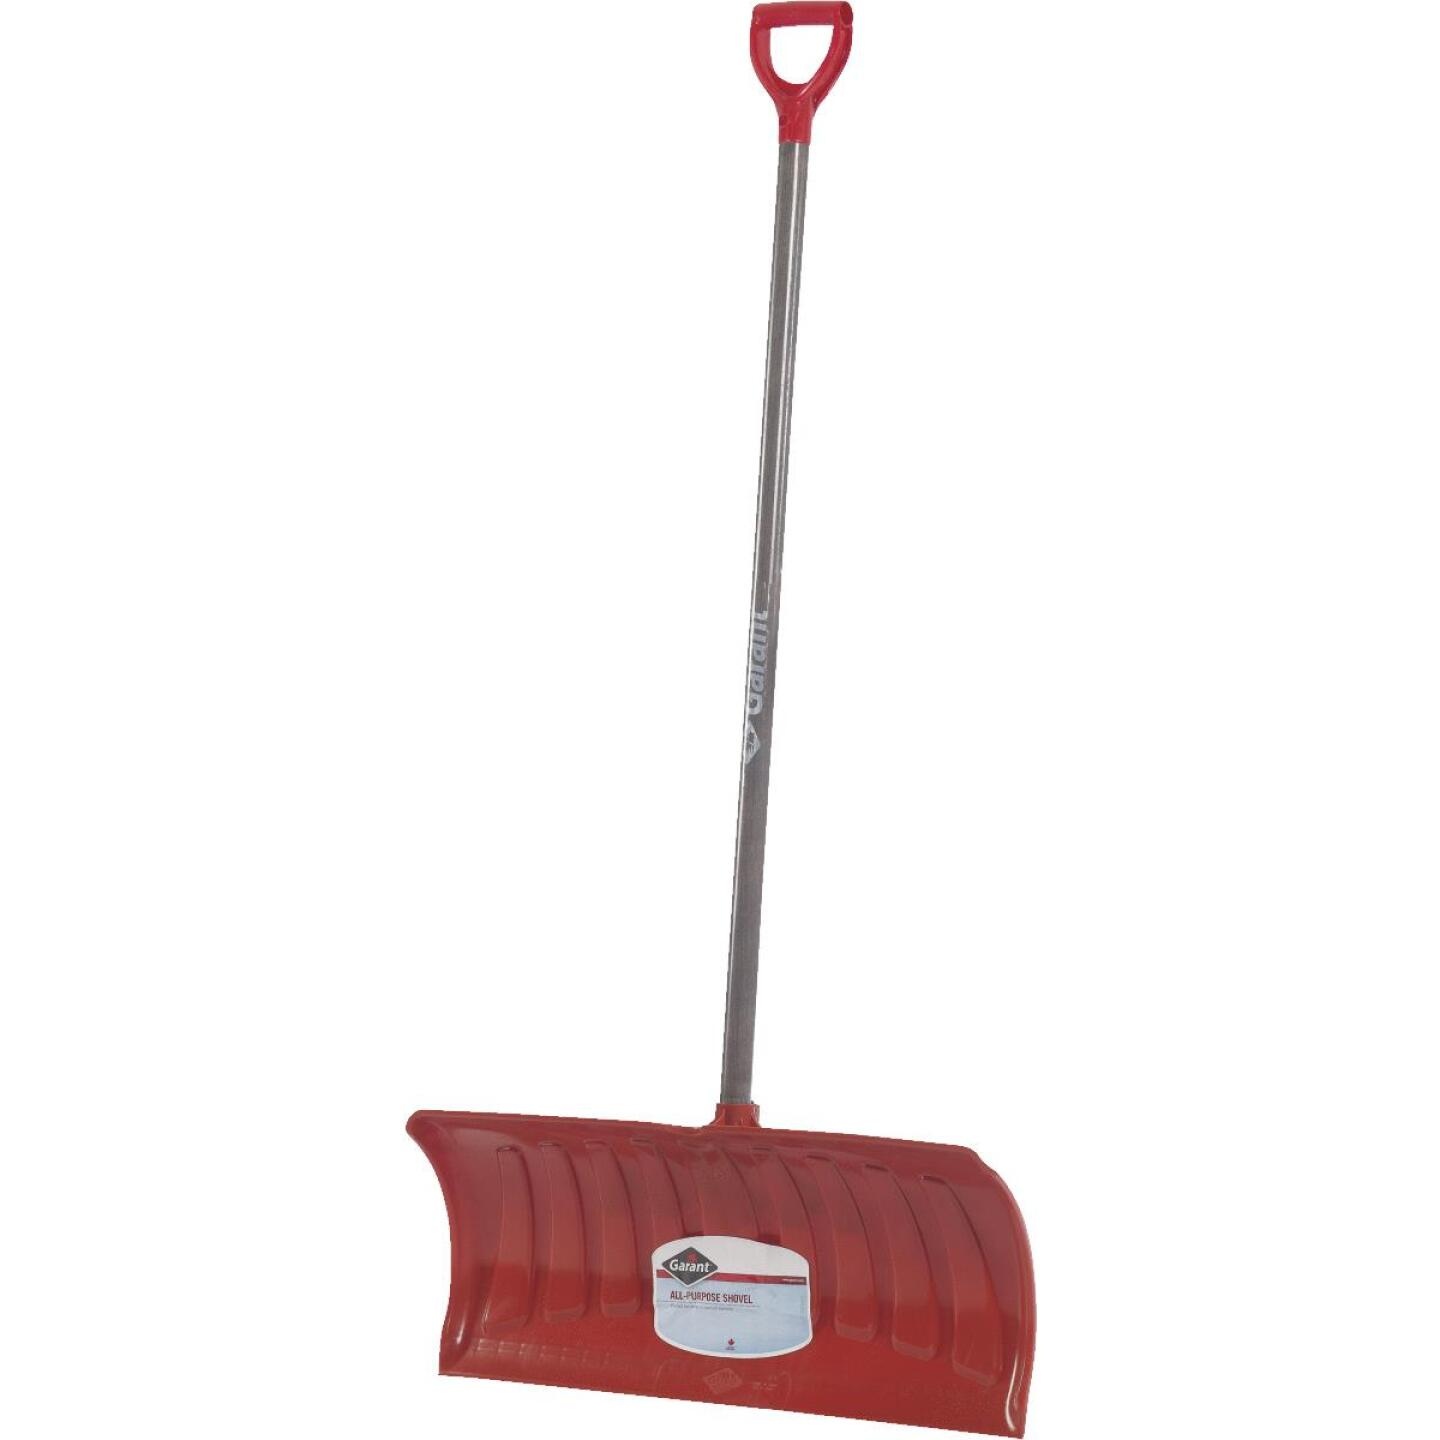 Garant Nordic 26 In. Poly Snow Pusher with 46.25 In. Wood Handle Image 2